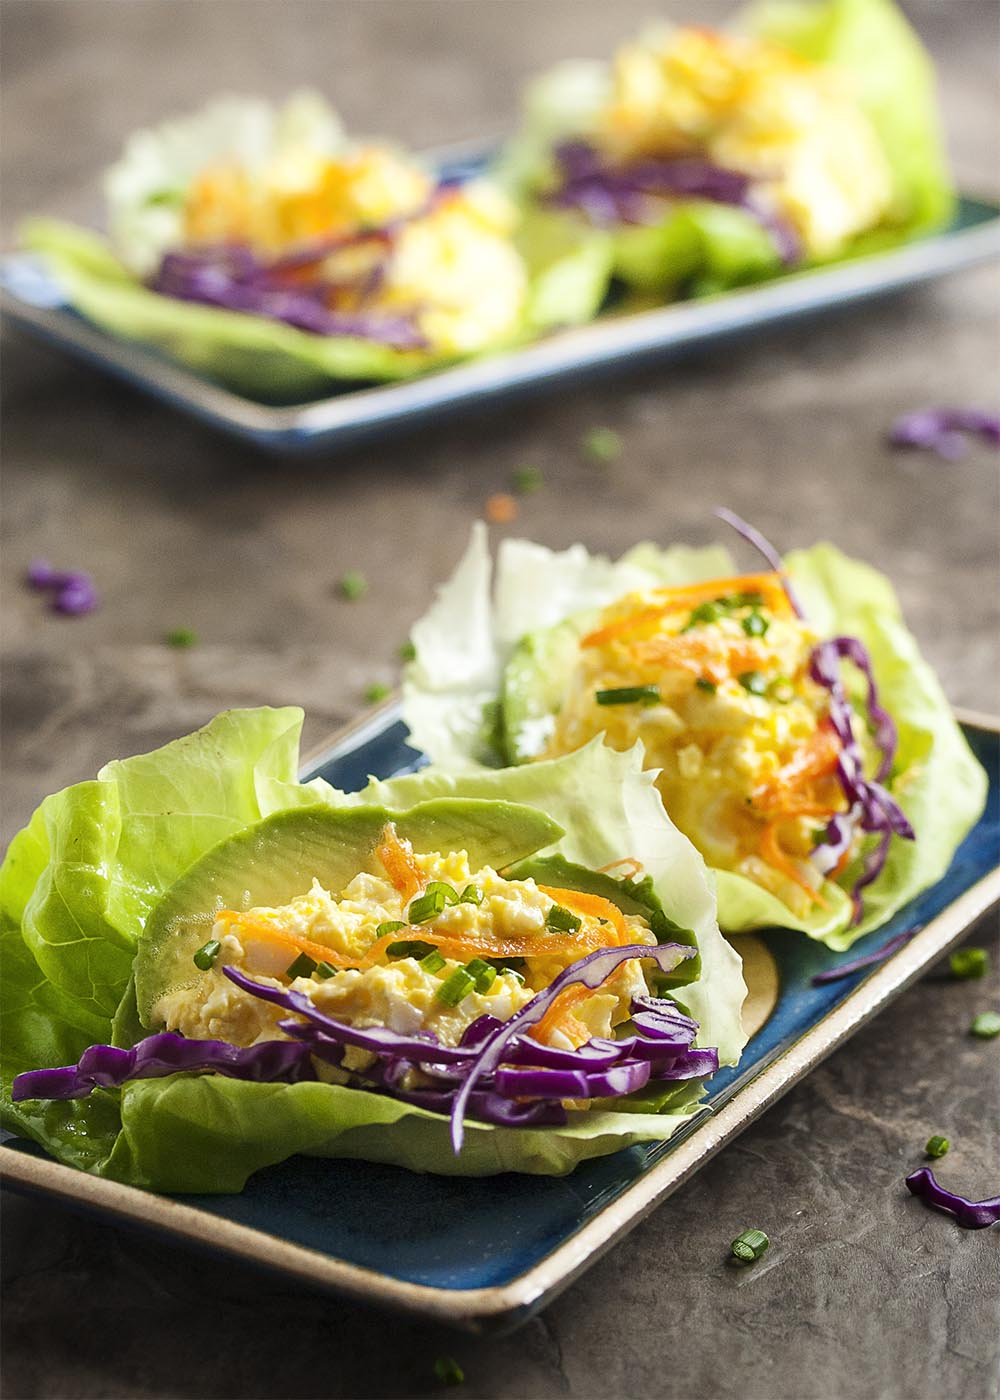 Avocado Egg Salad Lettuce Wraps - My favorite, simple egg salad recipe is paired here with avocado slices and wrapped in butter lettuce leaves. This is a wonderfully light and gluten-free way to enjoy egg salad. | justalittlebitofbacon.com